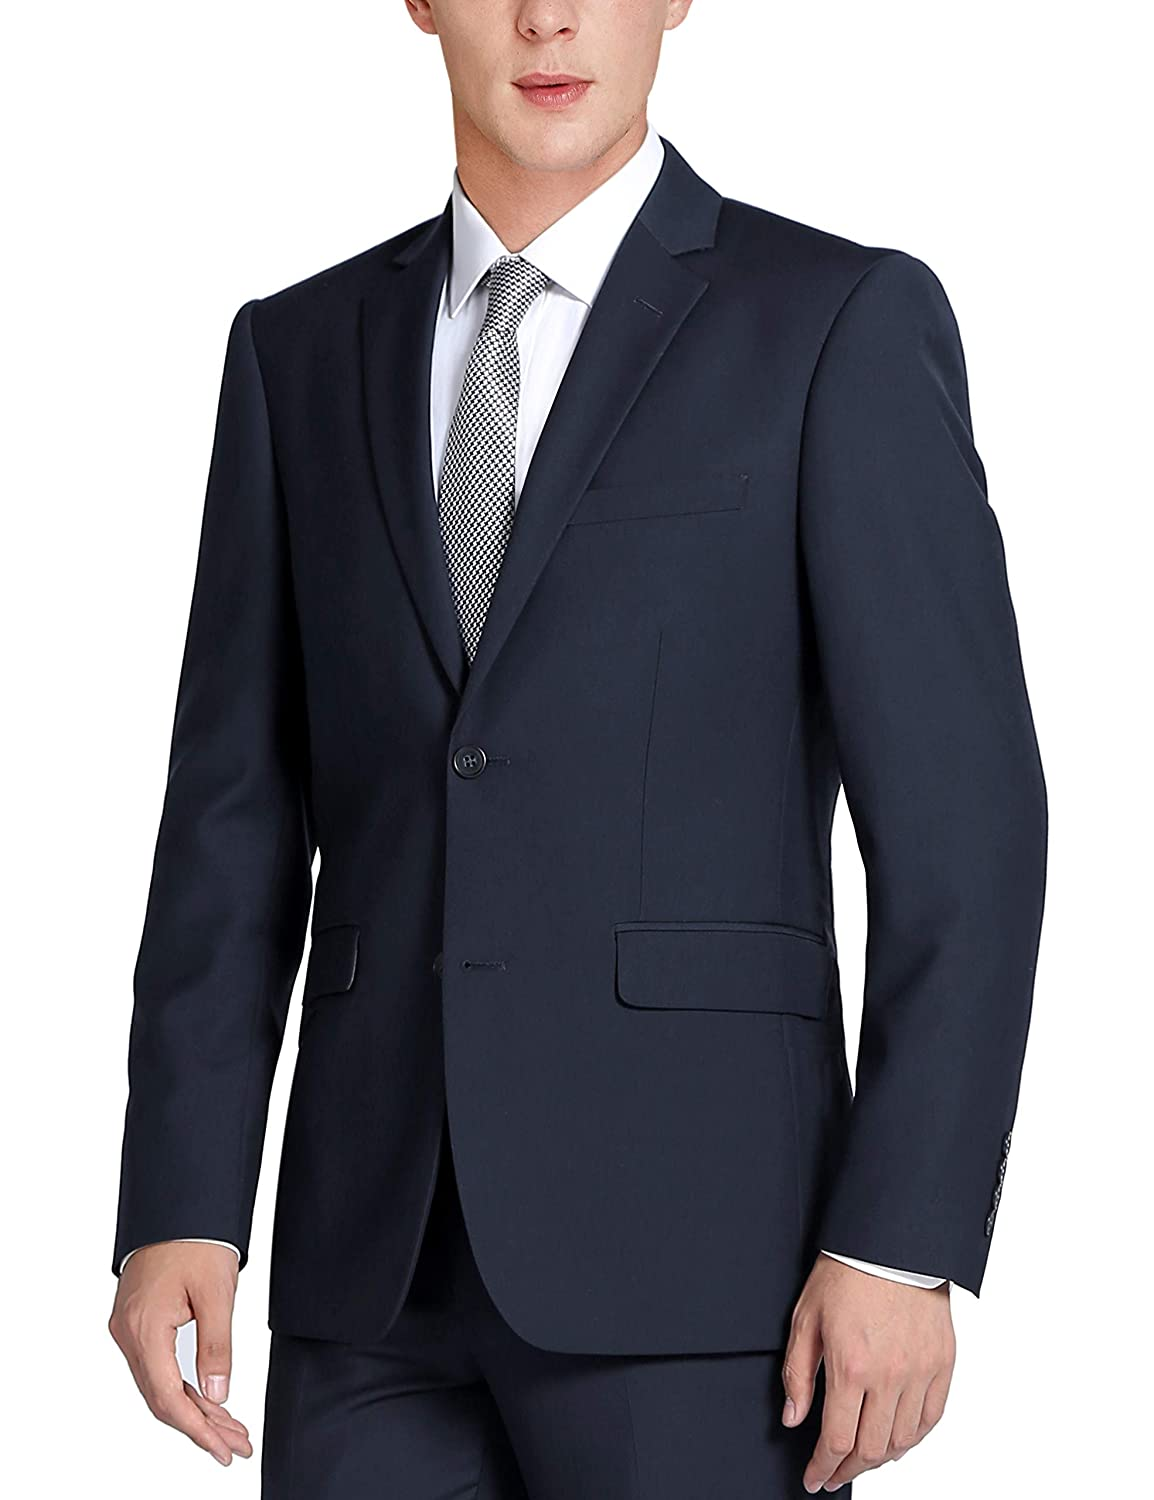 CHAMA Mens Solid Two Piece Two Button Classic Fit Business Suit-Many Colors